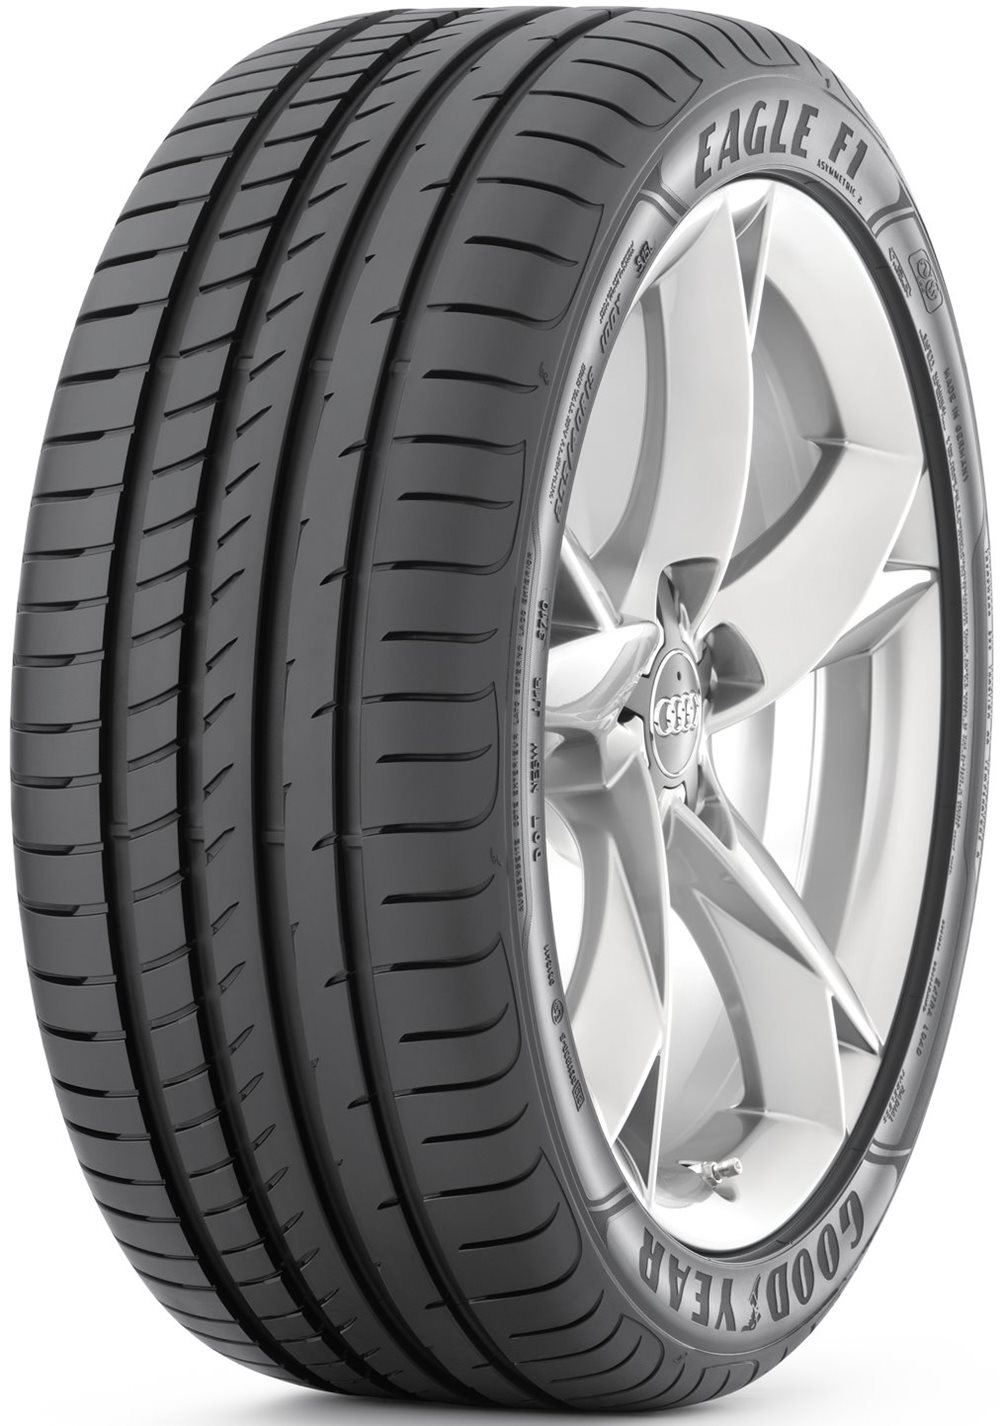 GOODYEAR EAGLE F1 ASYMMETRIC 2 SUV 265/50 R 19